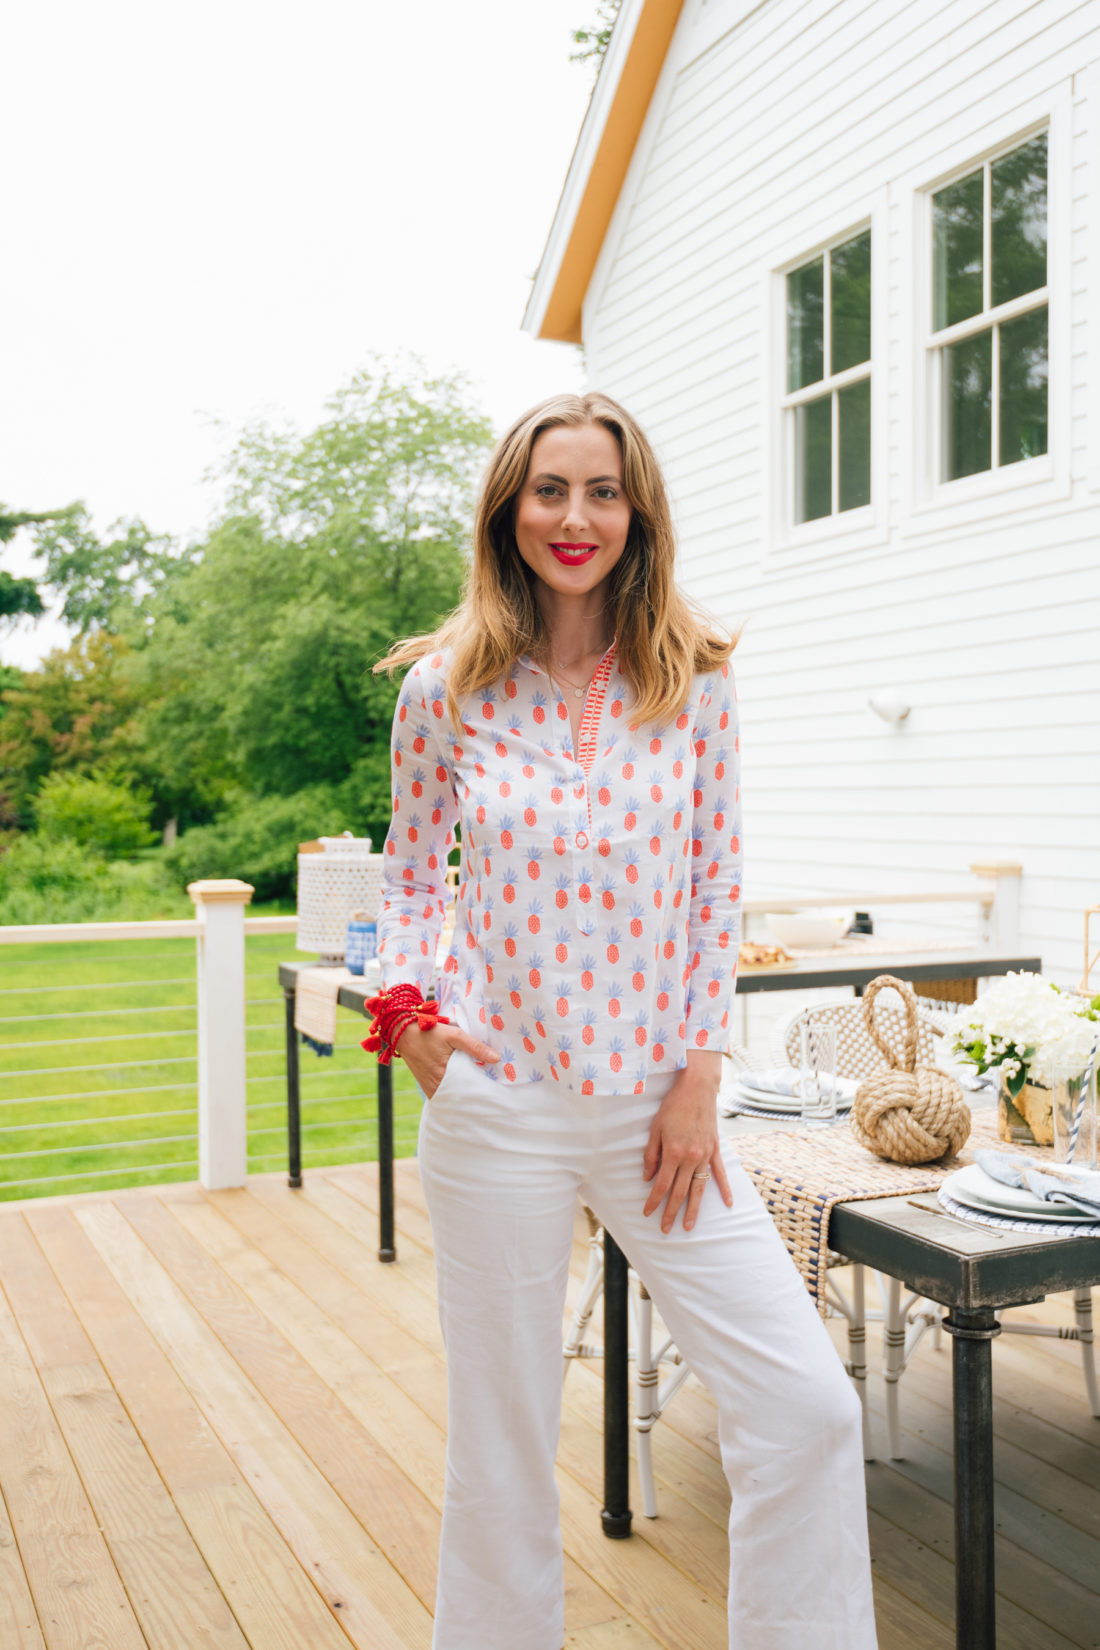 Eva Amurri Martino shows you how to throw a clambake (and hold a lobster)